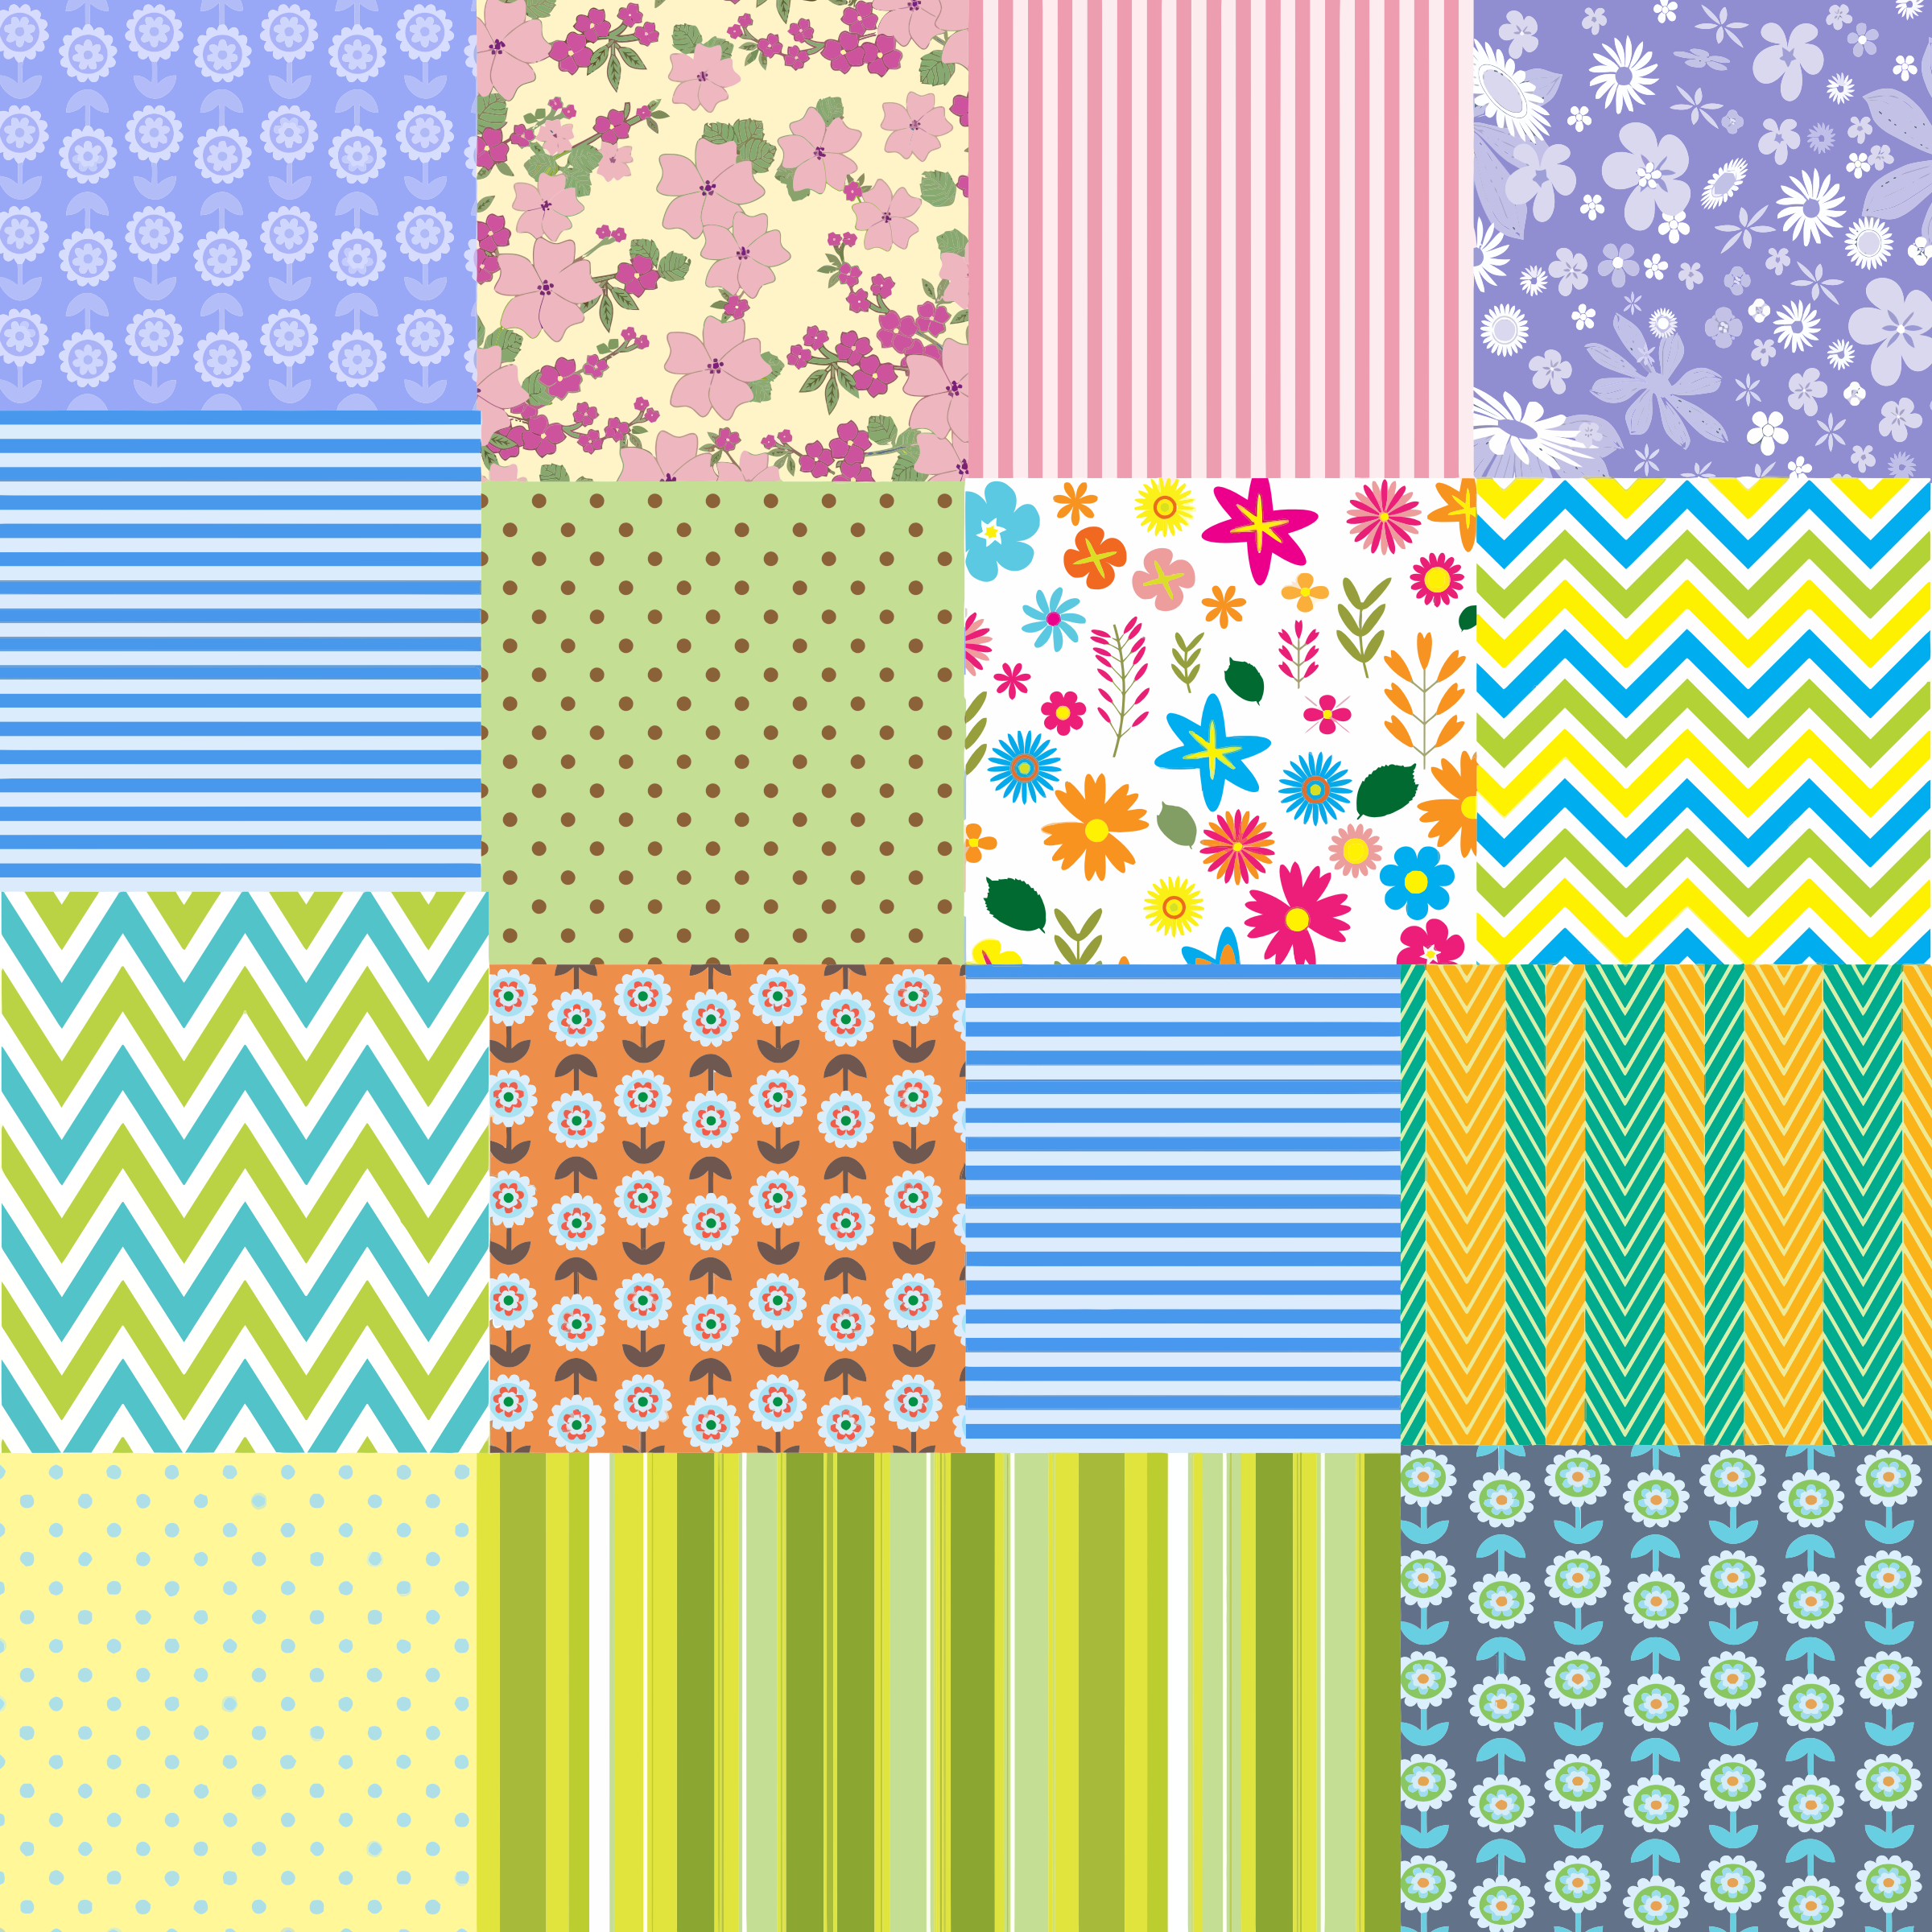 Patchwork Quilt Pattern Background by GDJ